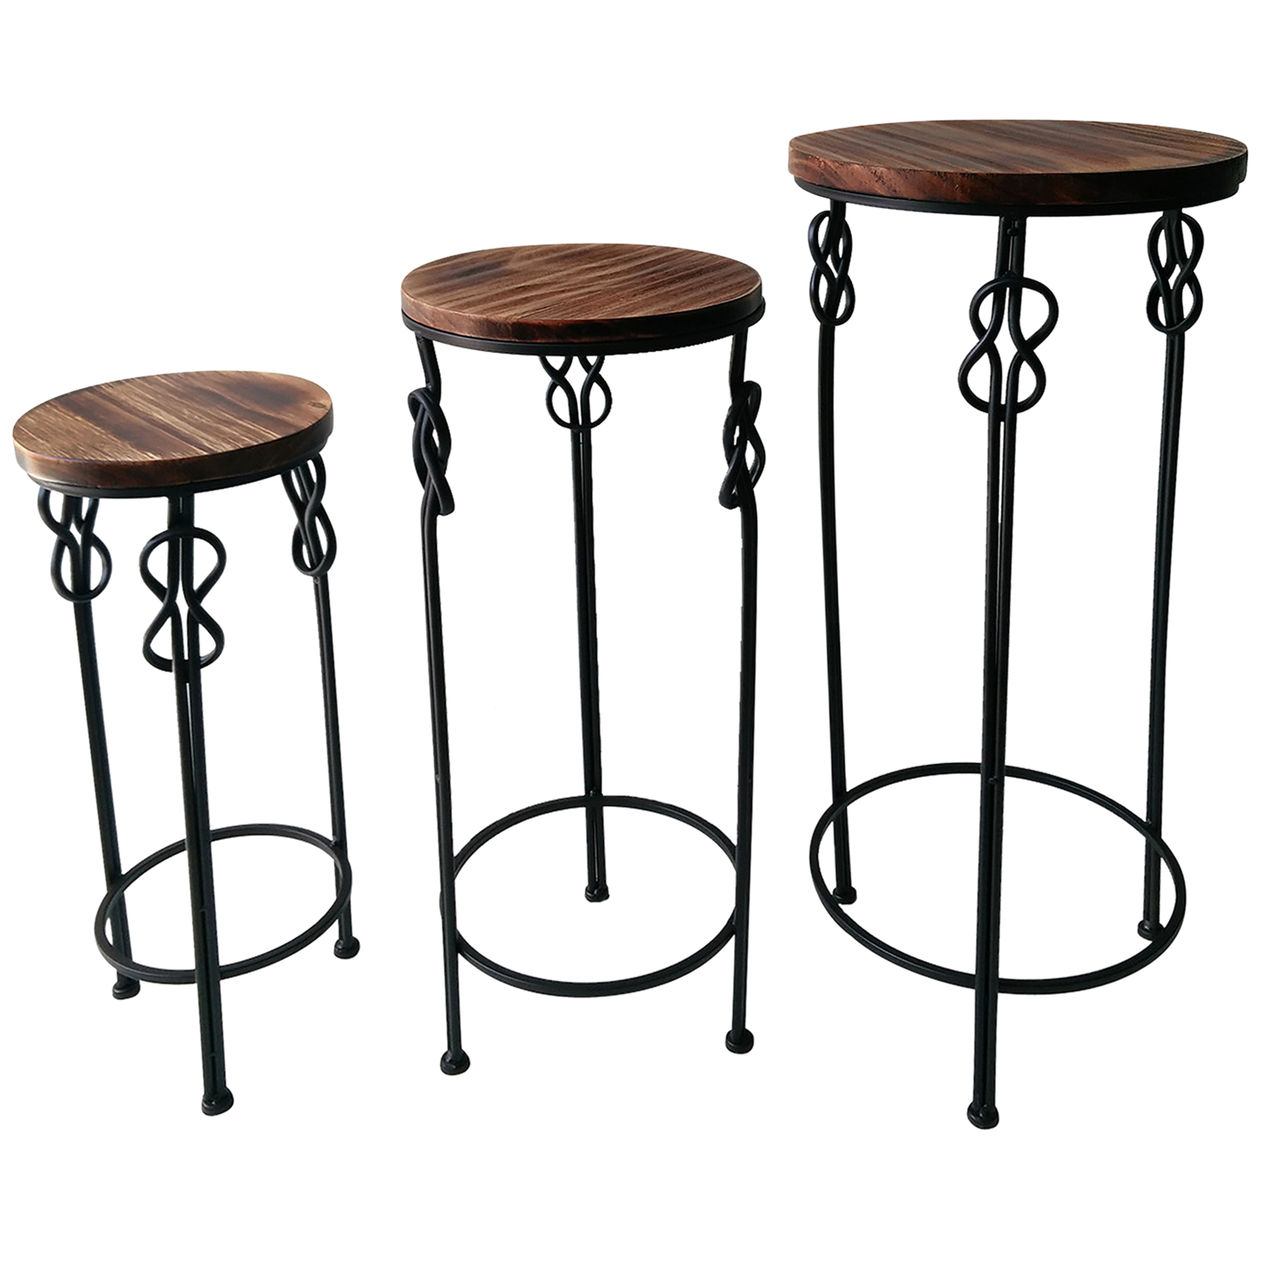 small round wood steel knot accent table home patio amp antique trunk coffee split barn door glass side with shelf kitchen cupboards handbag storage ikea west elm low bar height